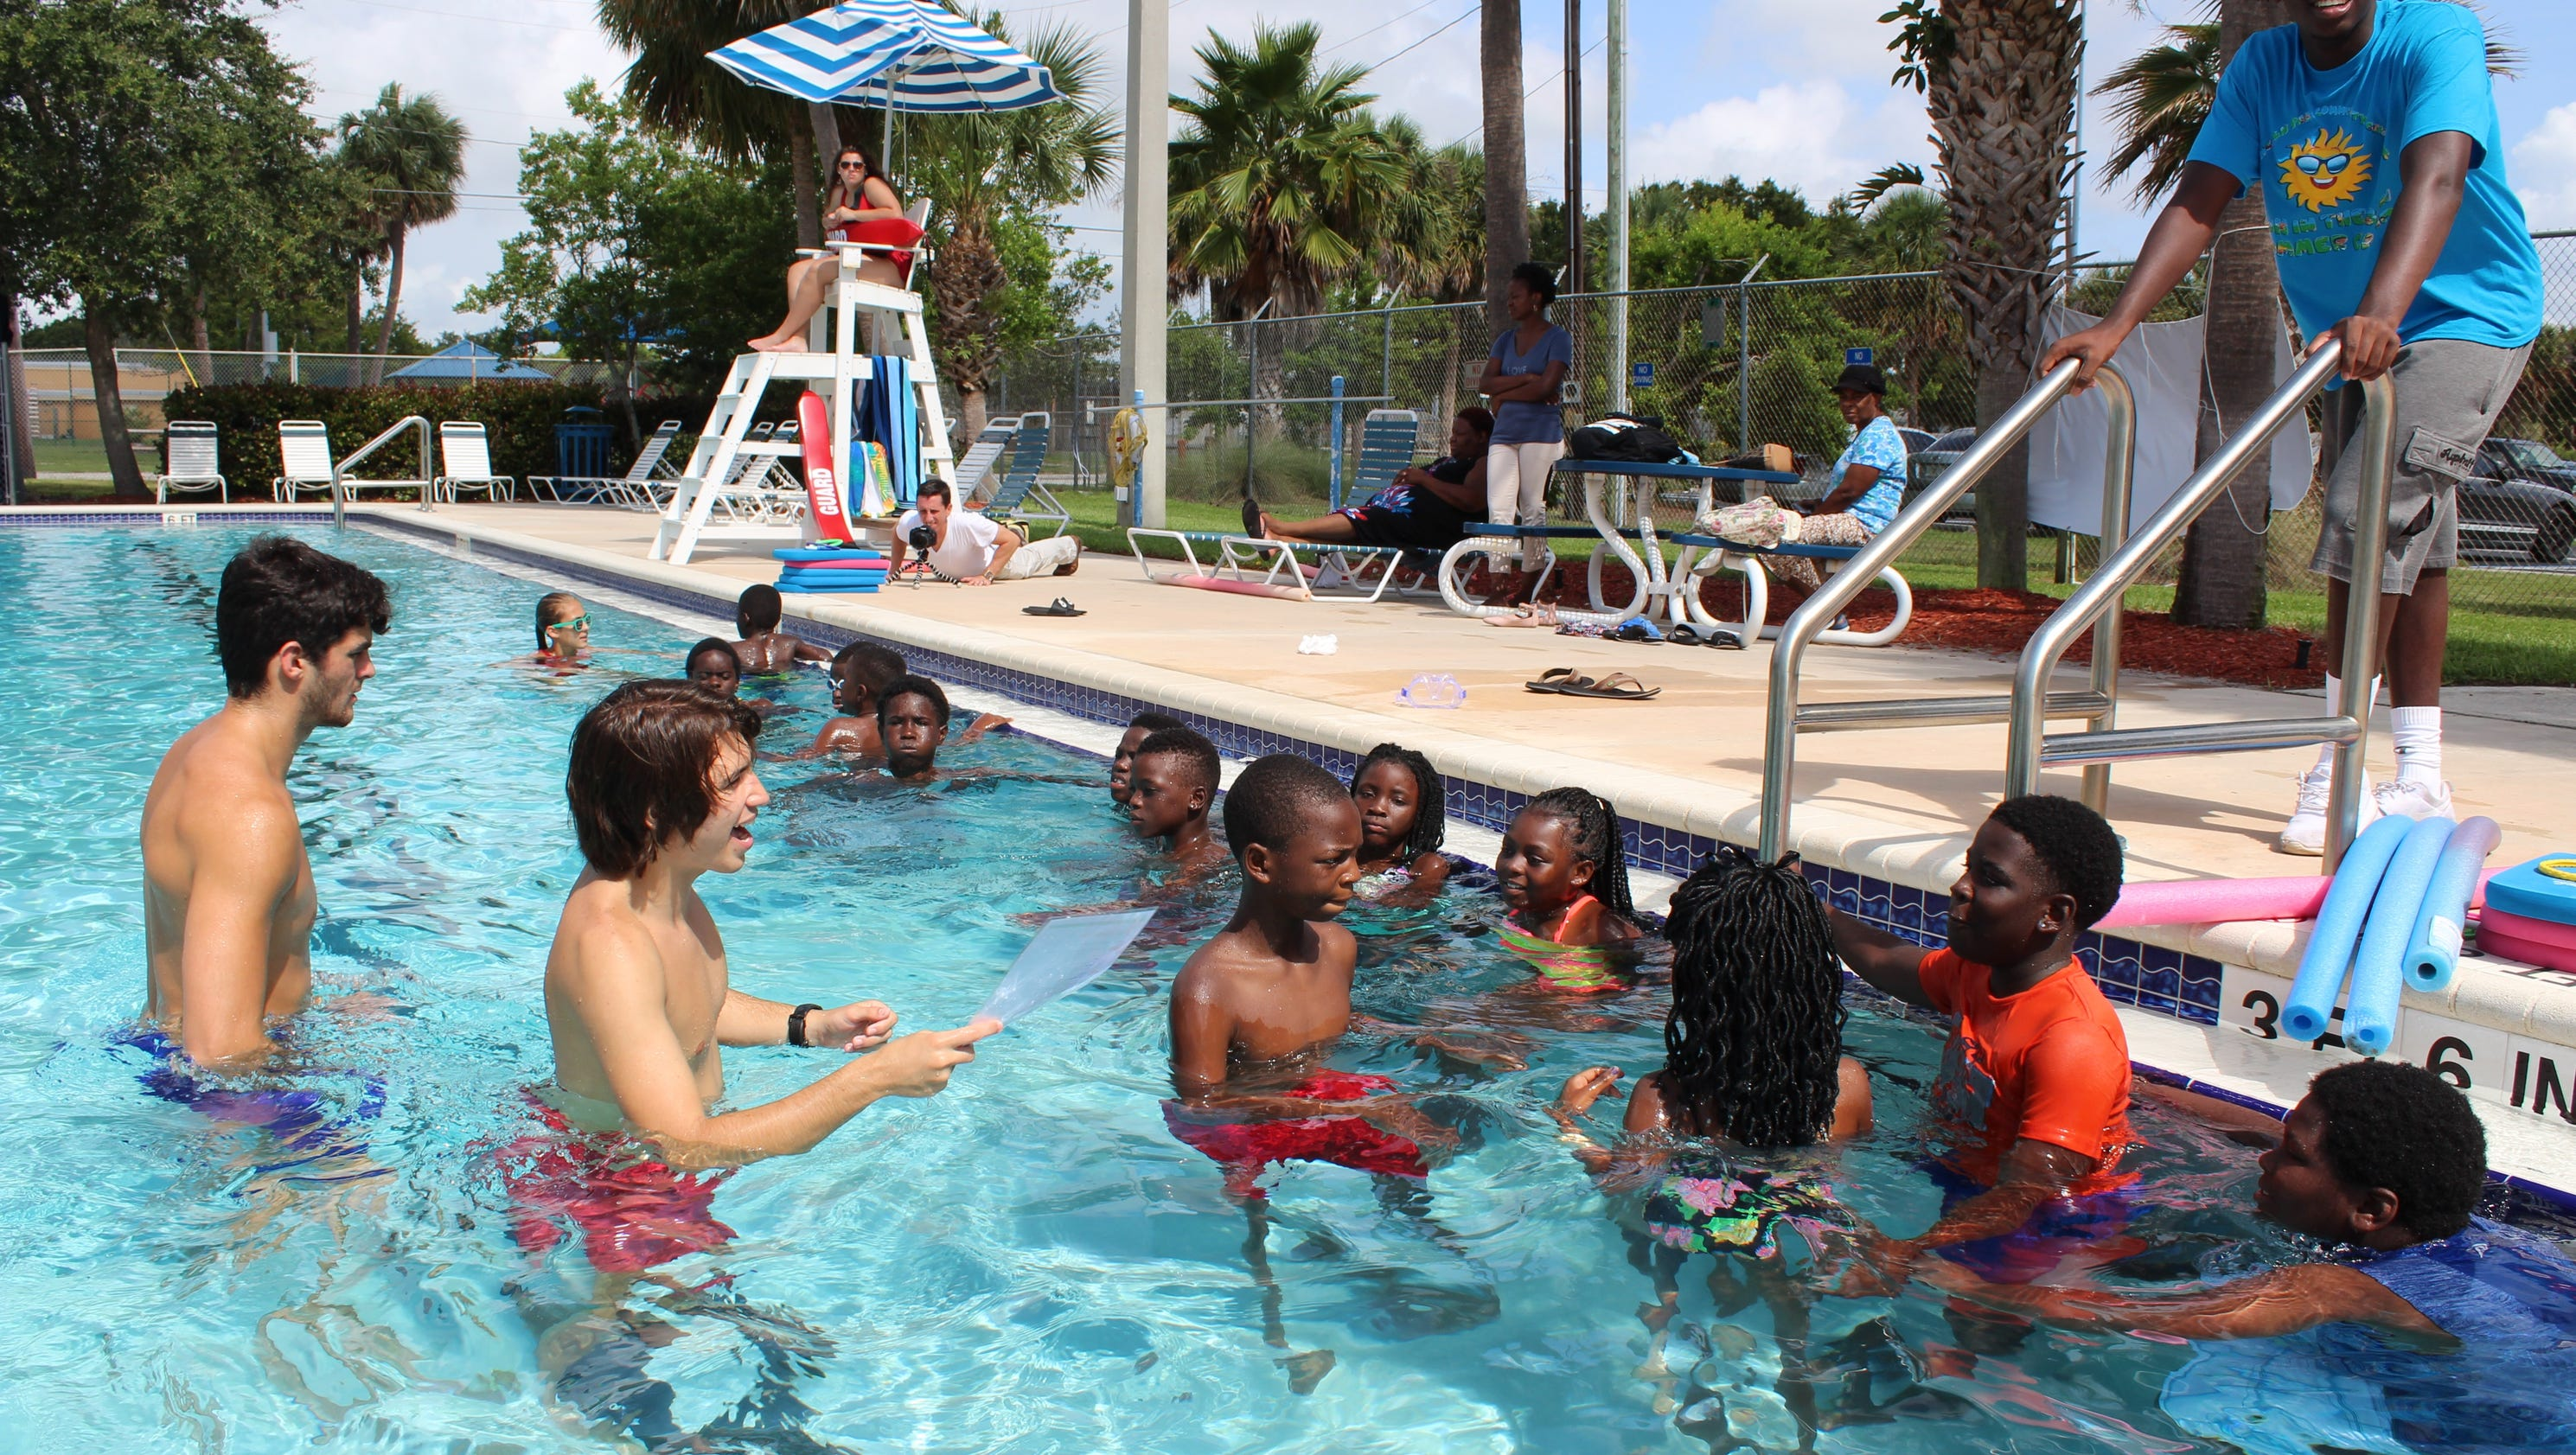 Lincoln Park Pool To Host Summer Kickoff Party June 1